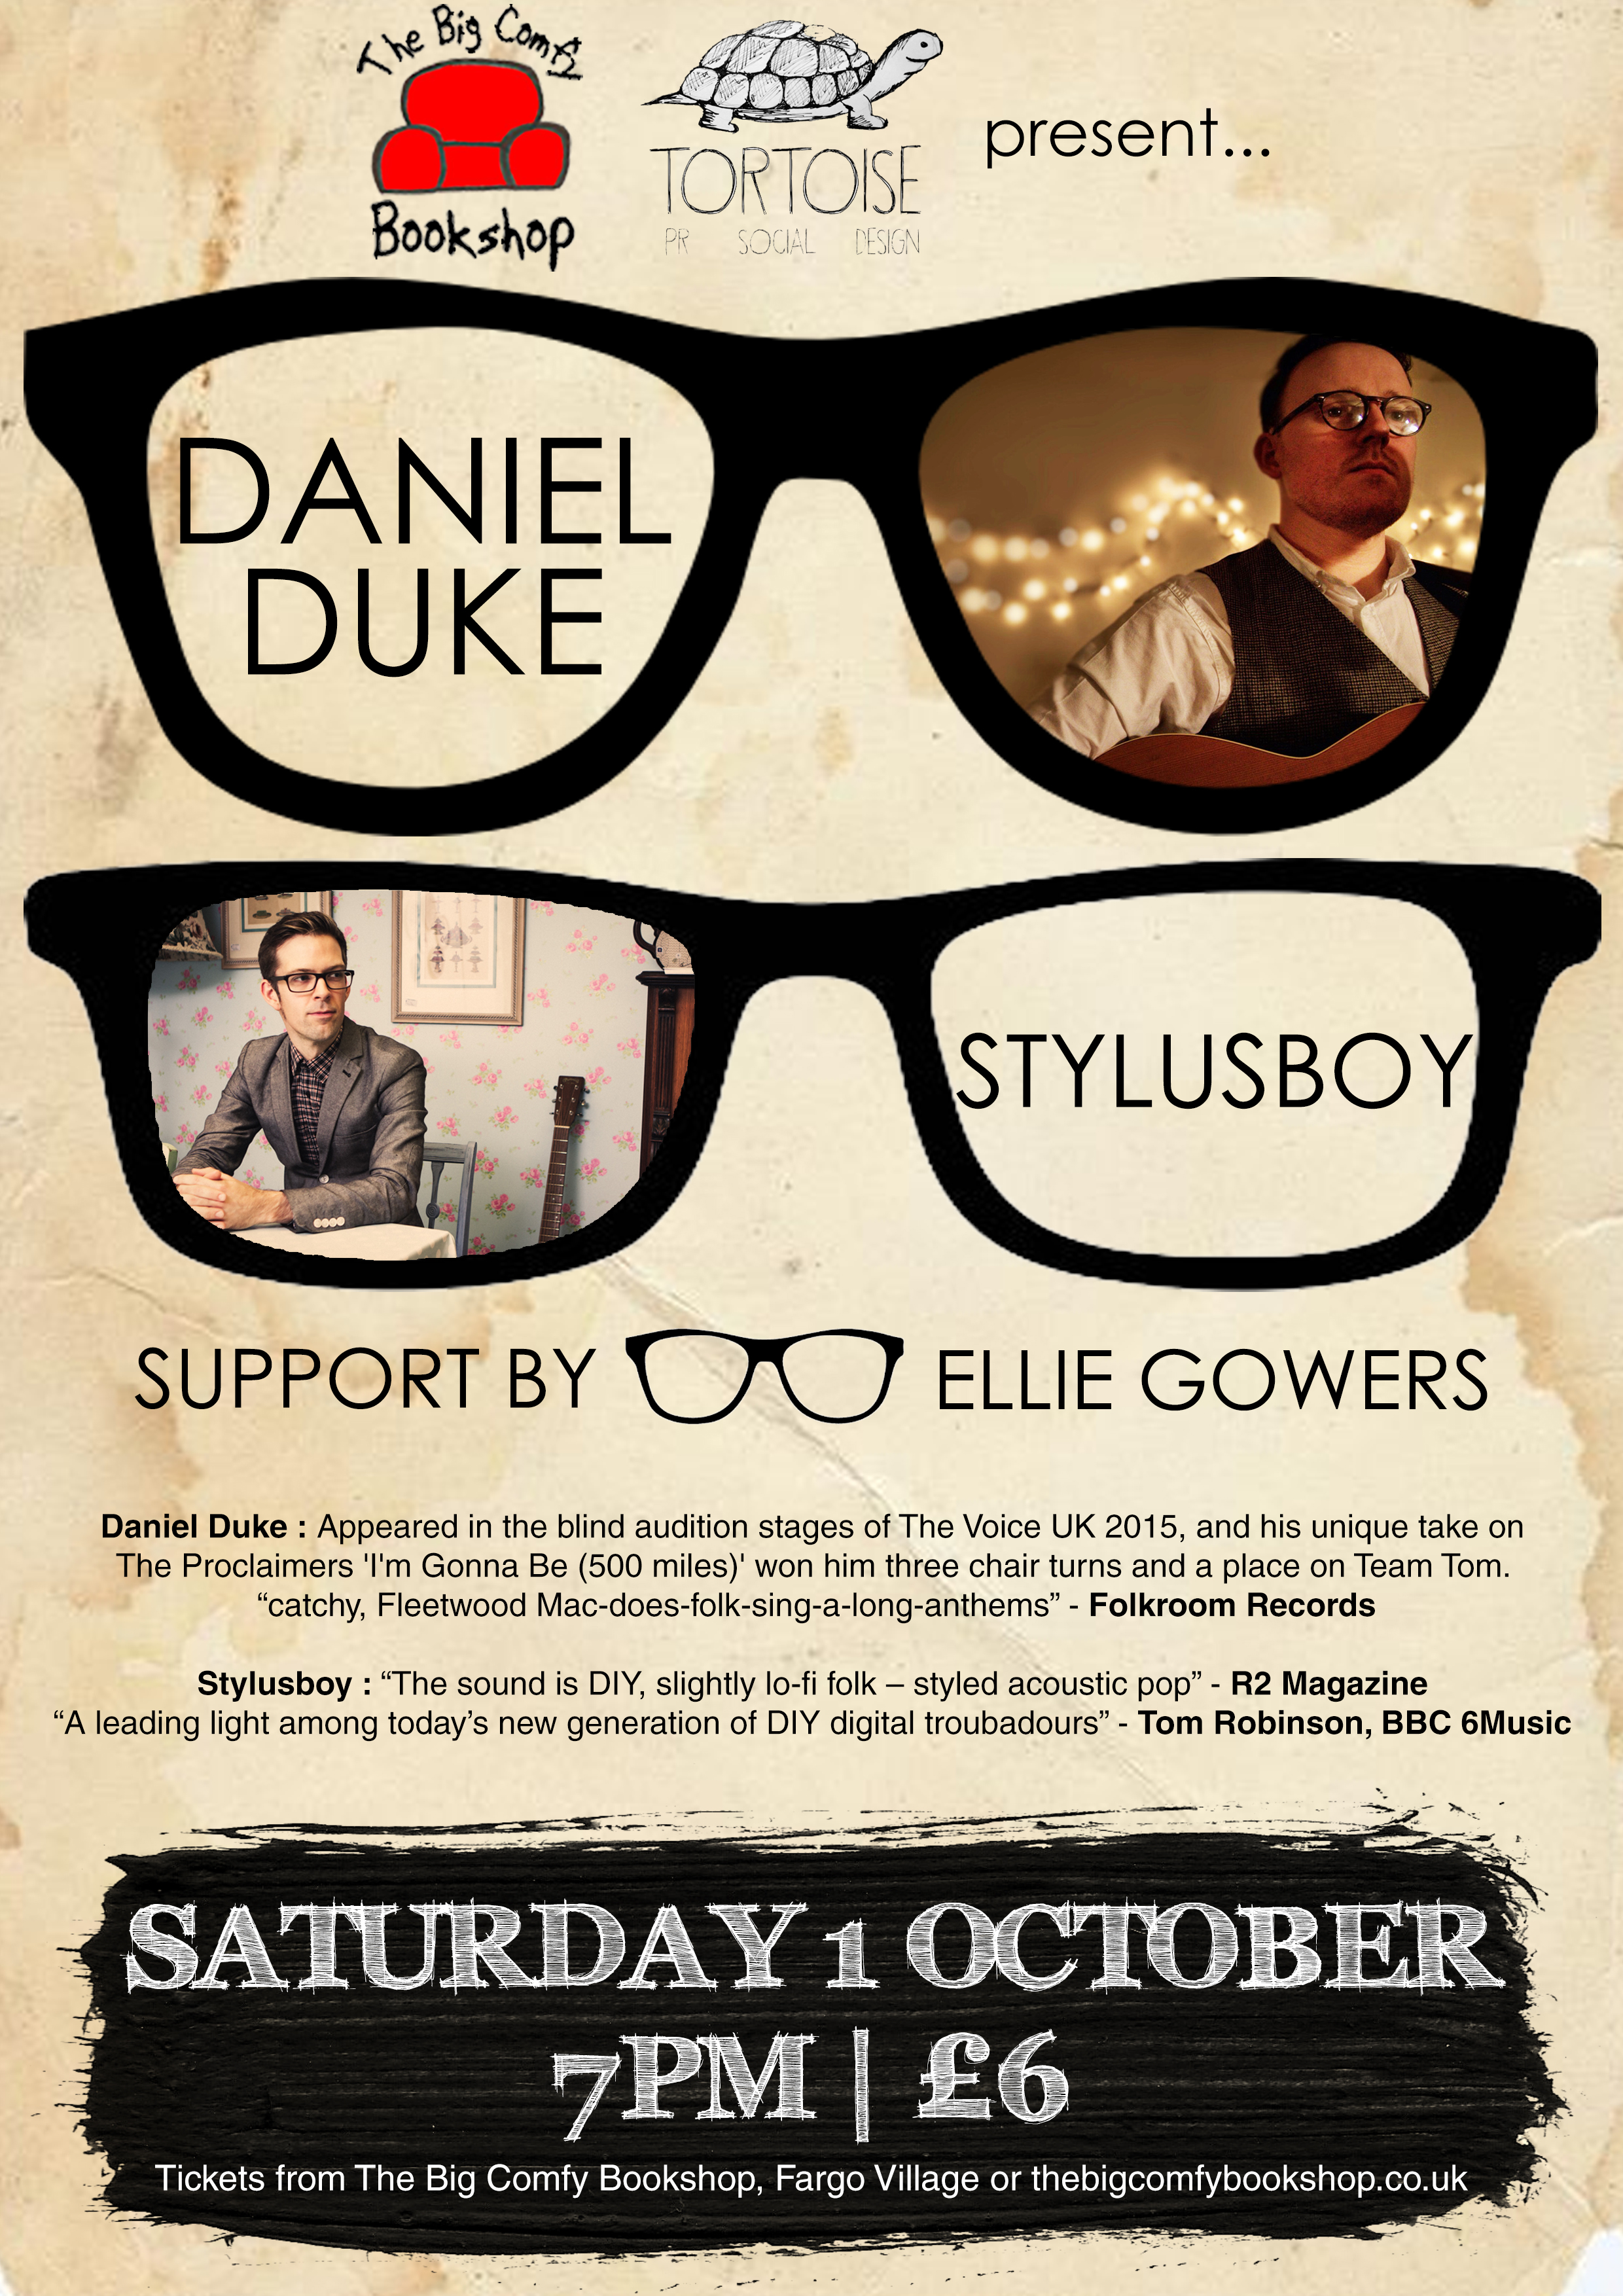 stylusboy-daniel-duke-big-comfy-bookshop-oct1st